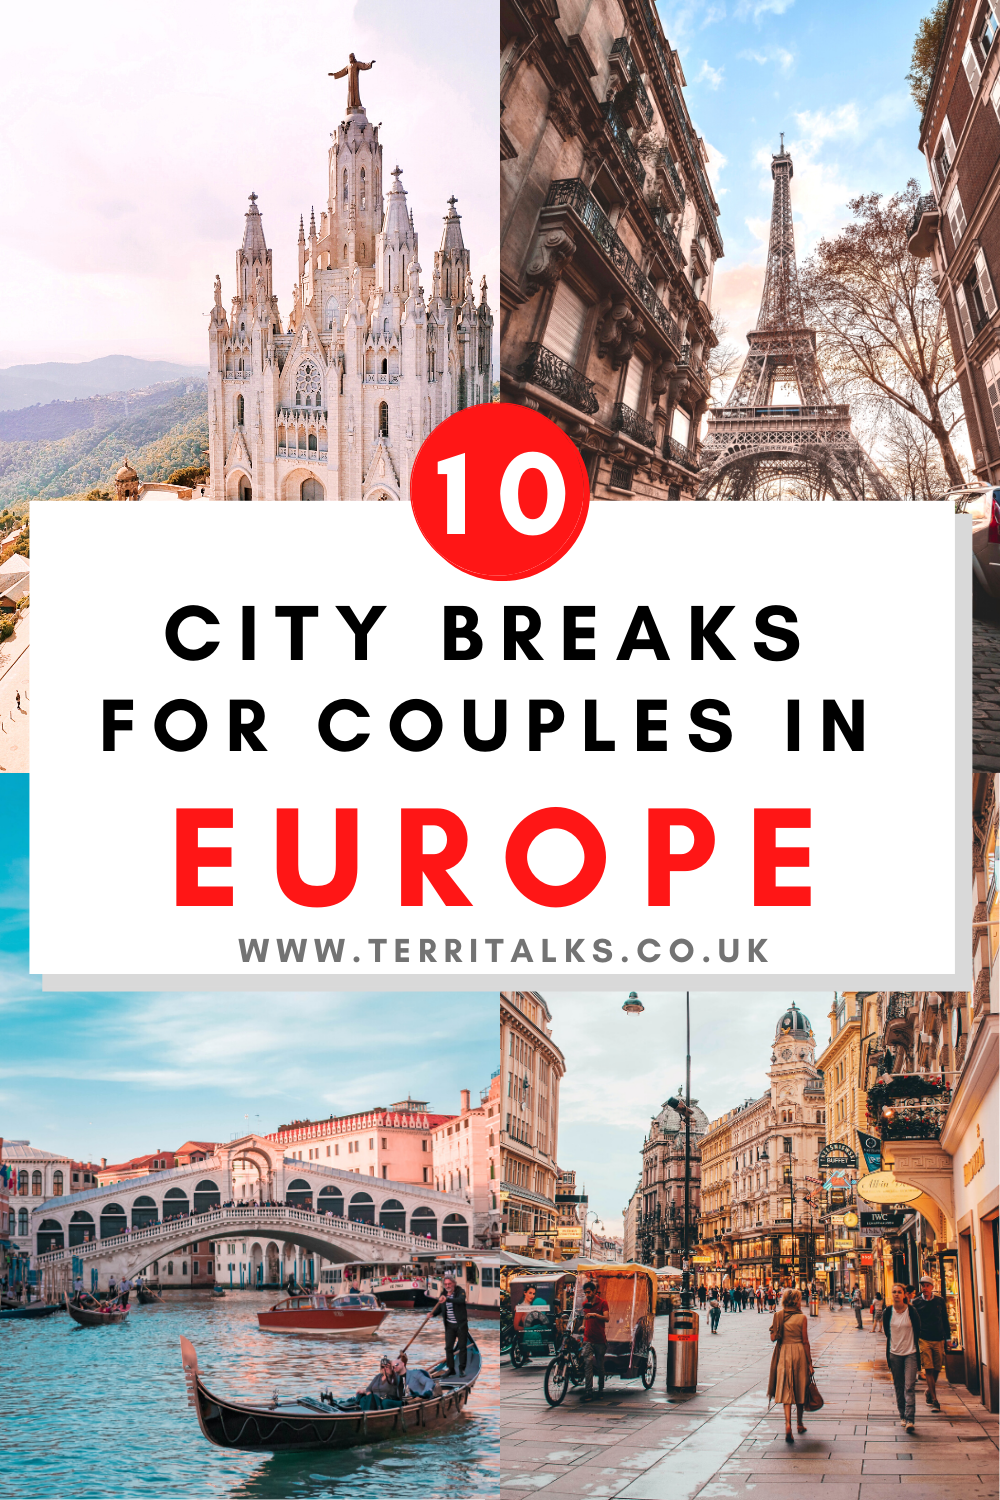 Pinterest Graphic for 10 City Breaks in Europe for Couples